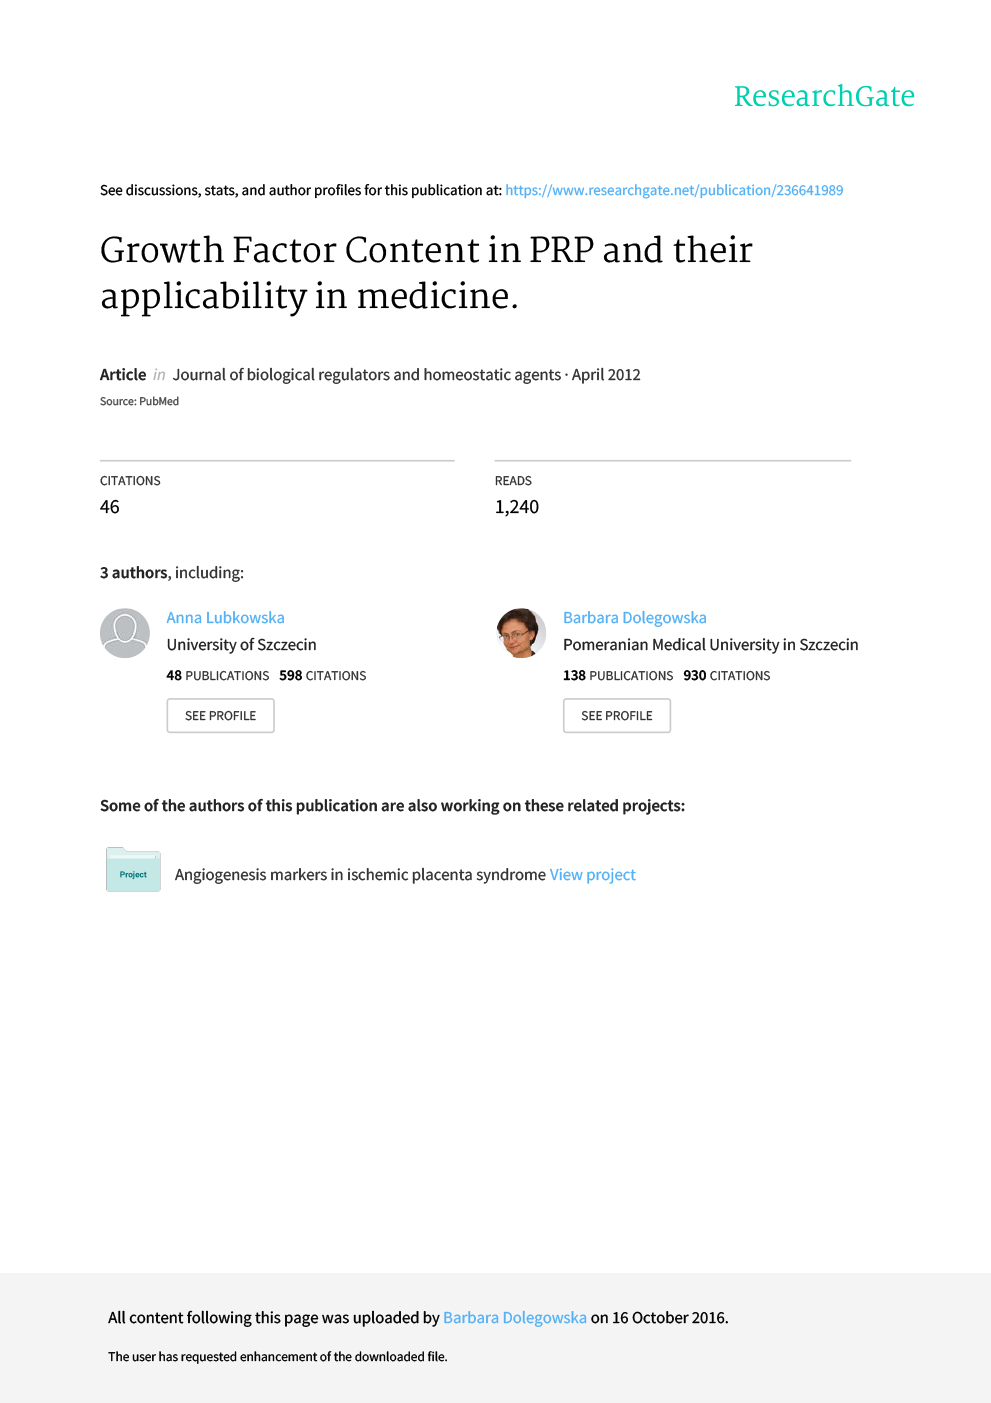 Growth Factor Content in PRP Applicability in Medicine 1 1